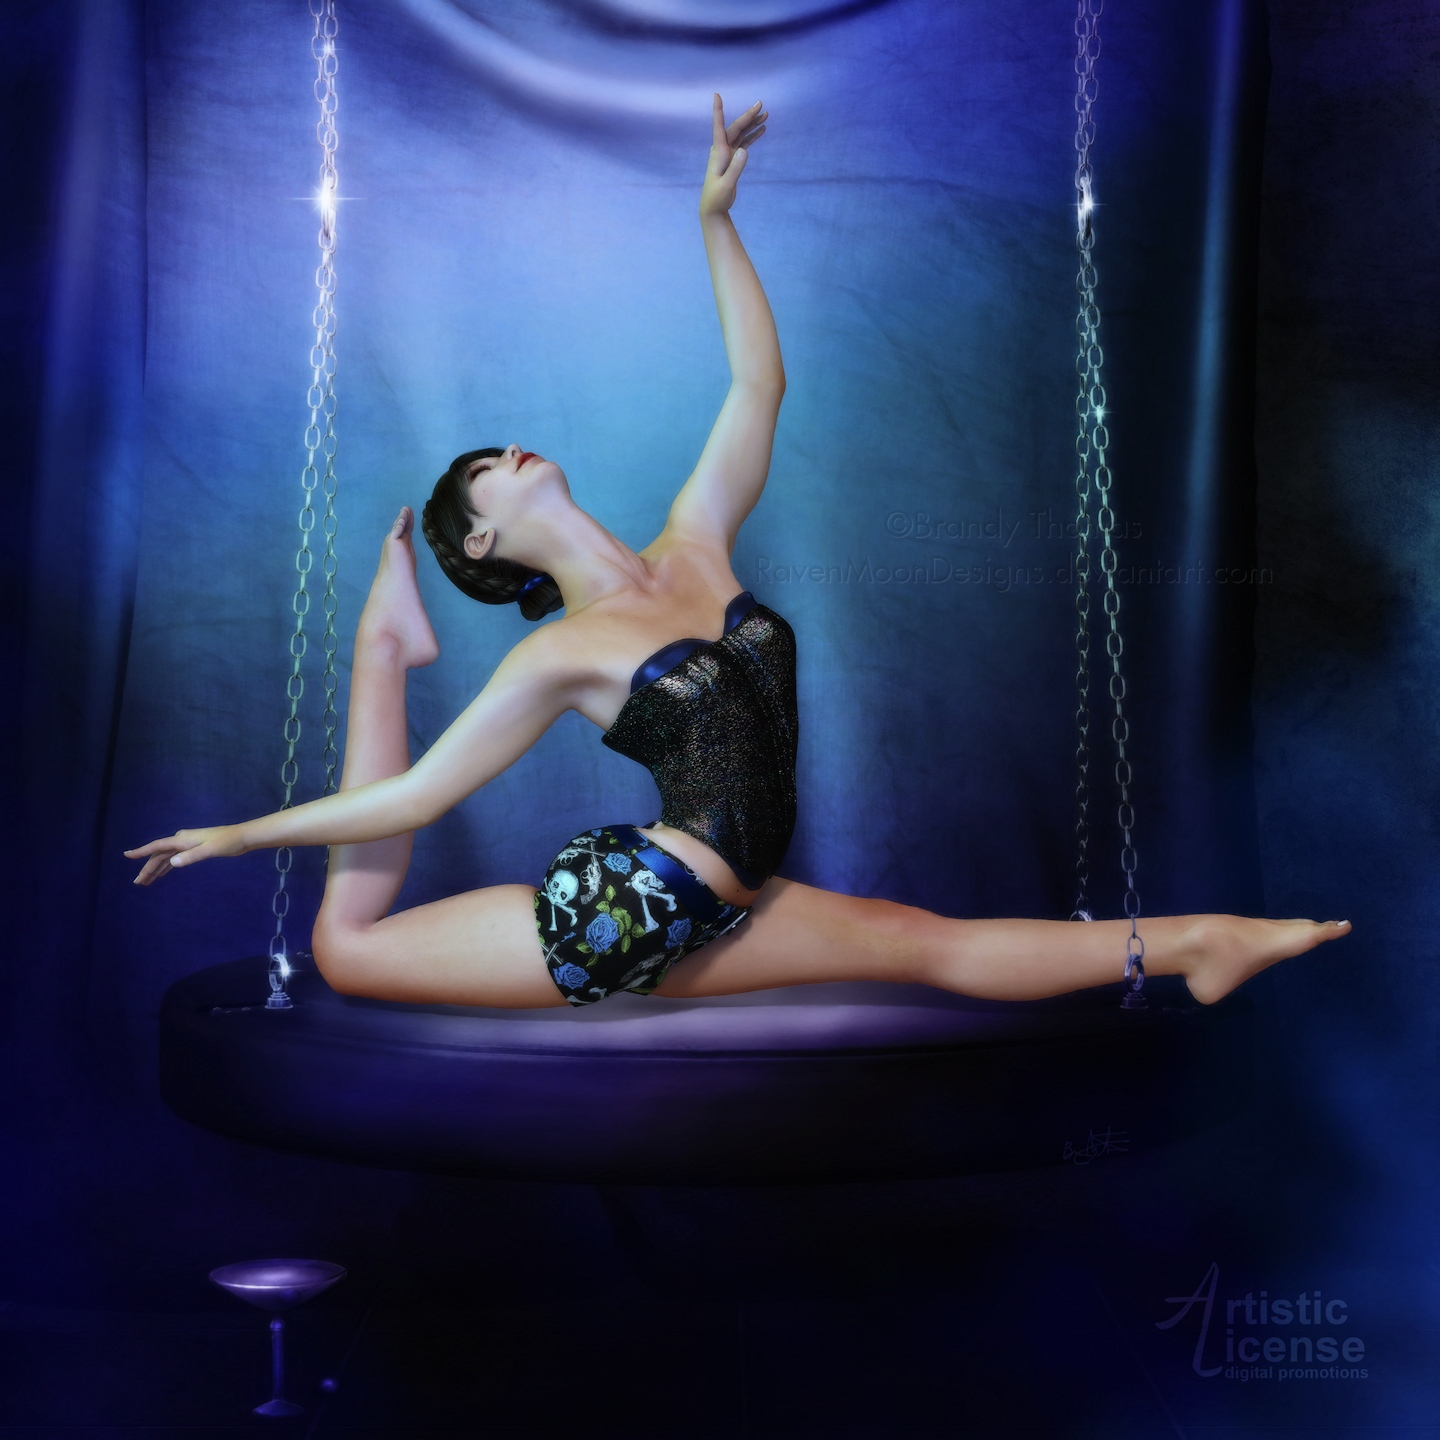 The Blue Dancer by RavenMoonDesigns